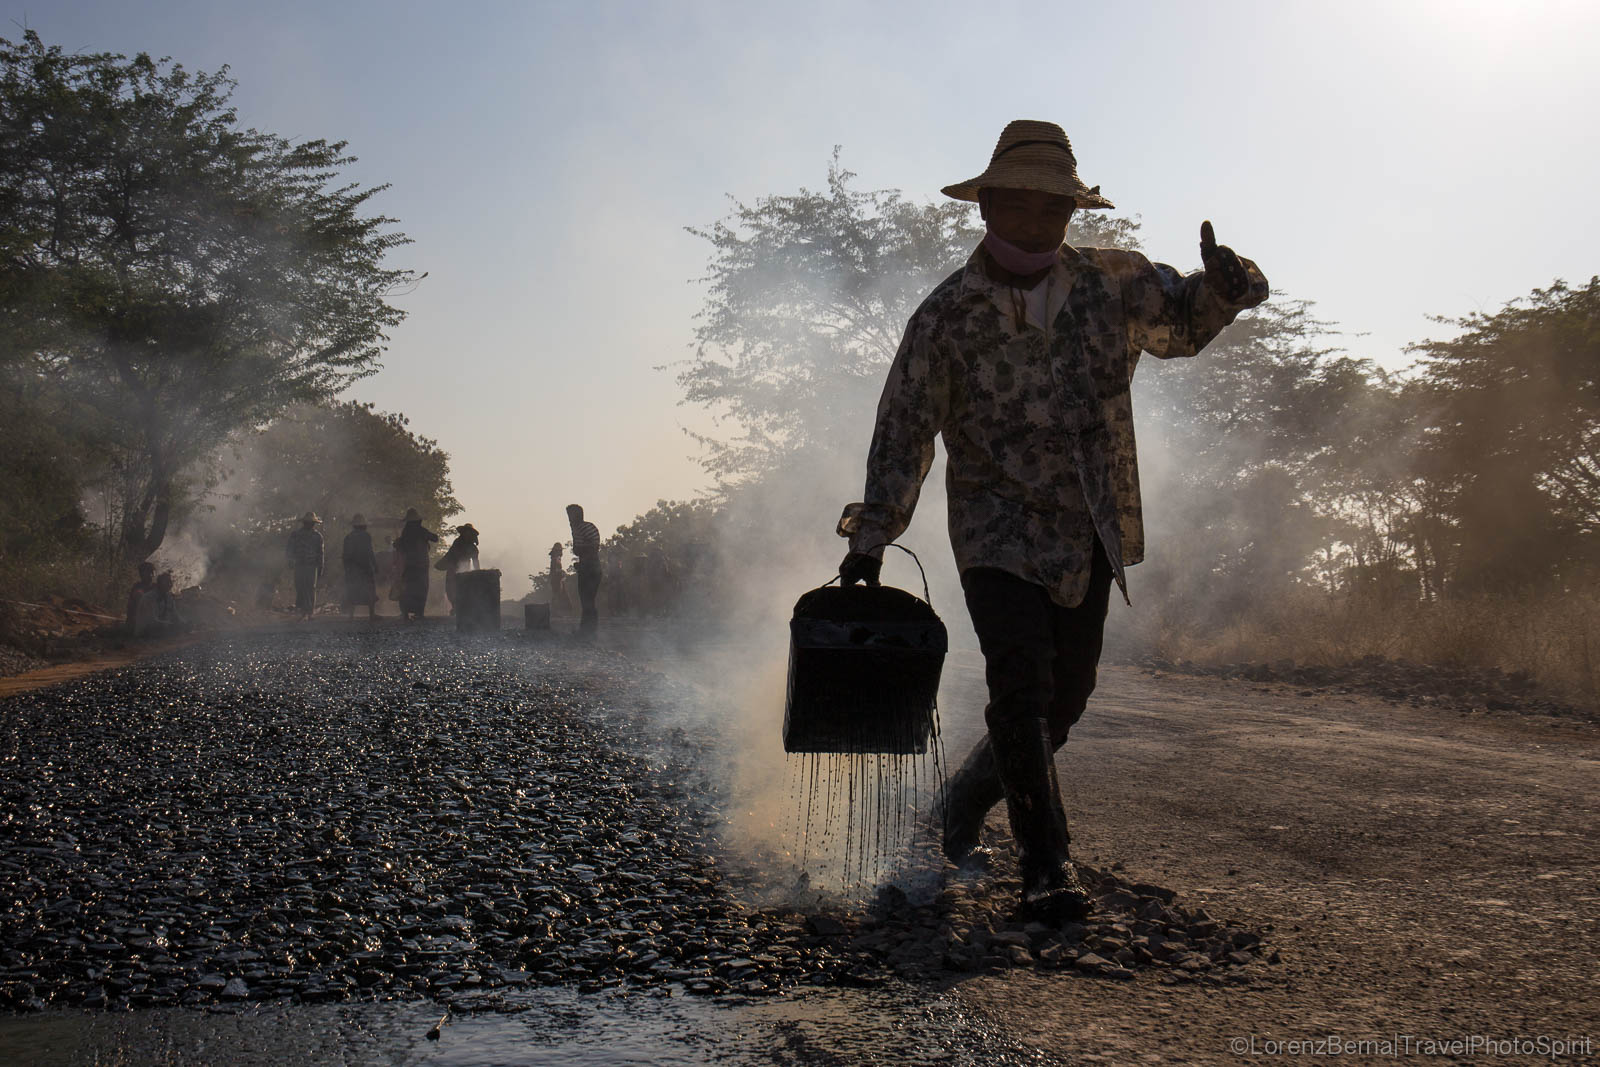 Workers pouring tar on a road in Myanmar